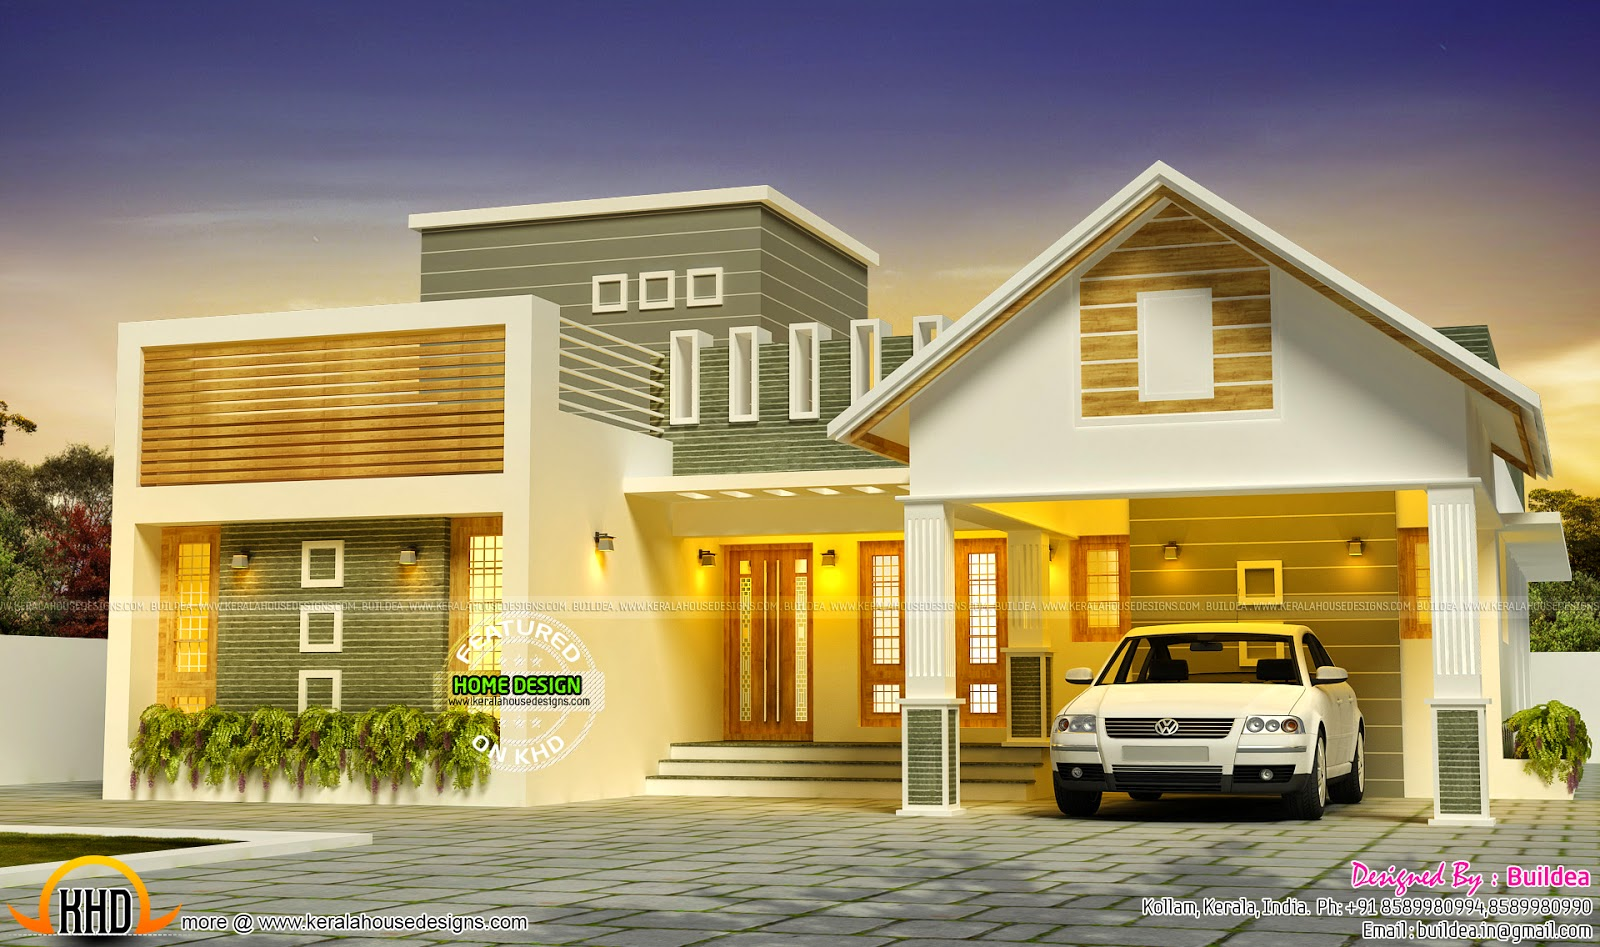 Awesome dream home design kerala home design and floor plans for Design dream home online